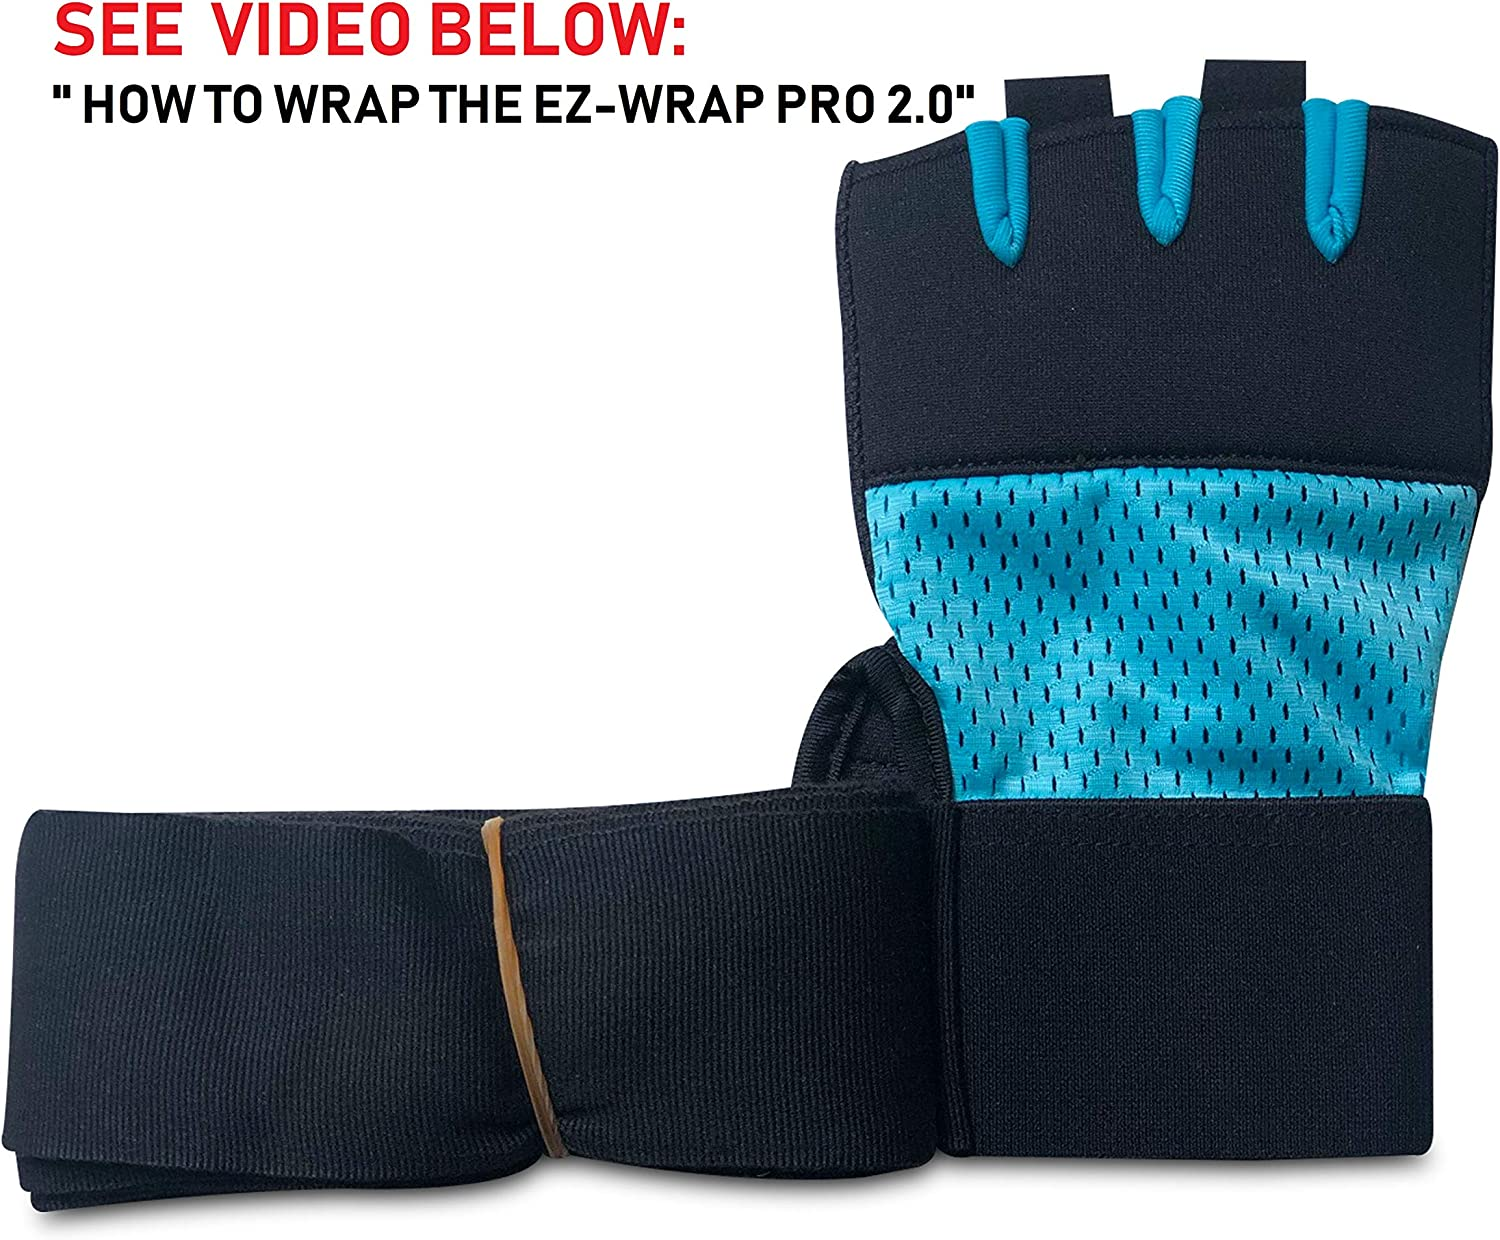 B07YK1DG6Q EZ-WRAP PRO 2.0 Boxing Hand Wraps for Women: Gel Knuckle Protection Inner Glove with Mexican Style Wrap, Superior Wrist Support for Boxing,Kickboxing and Martial Arts Workouts. 711PHP35mzL